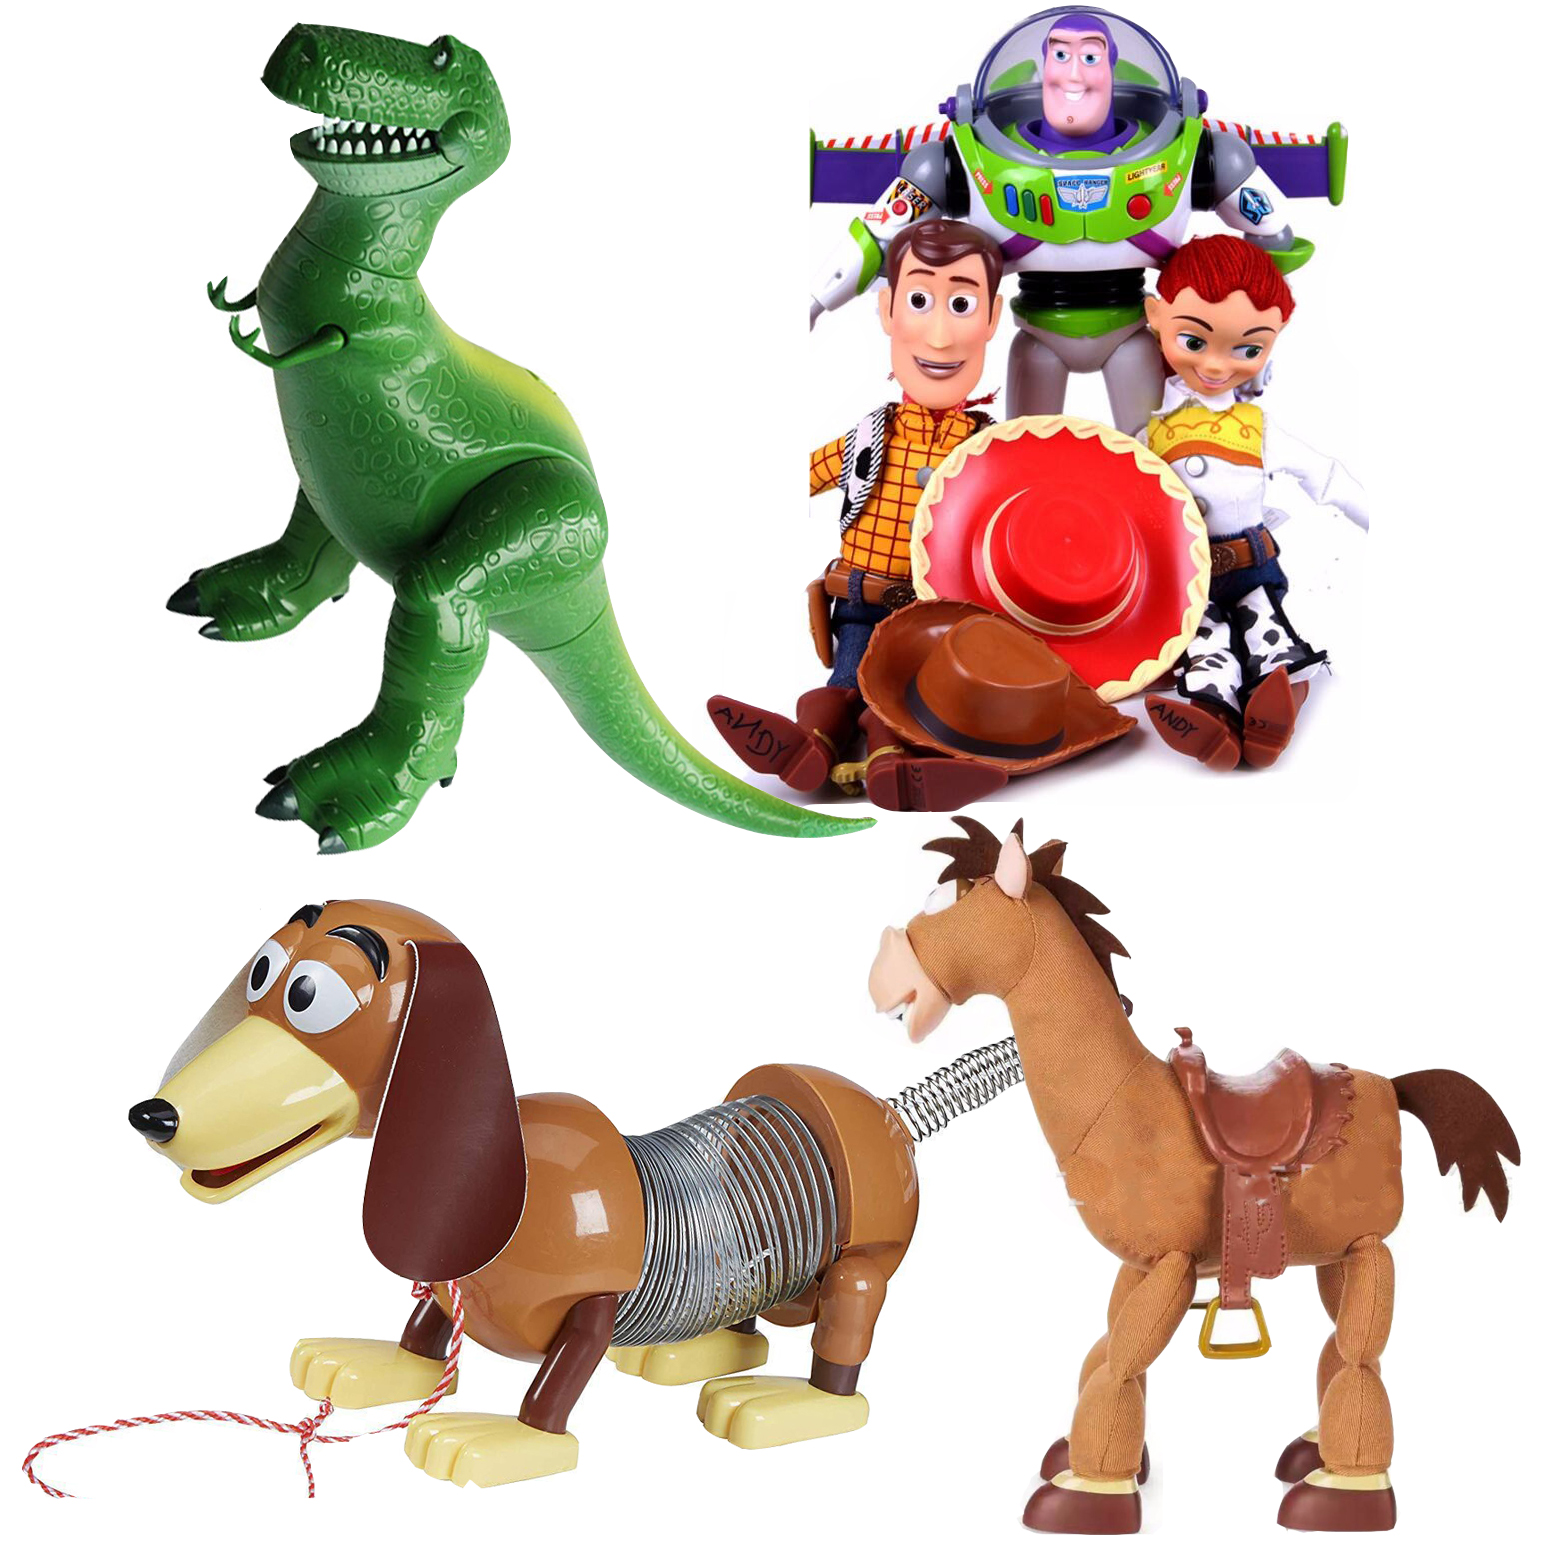 43cm Toy Story 3 Talking Woody Speaking Jessie Buzz Lightyear Action Toy Figures Model Toys Plush Doll Rex Figurine Kids Gift